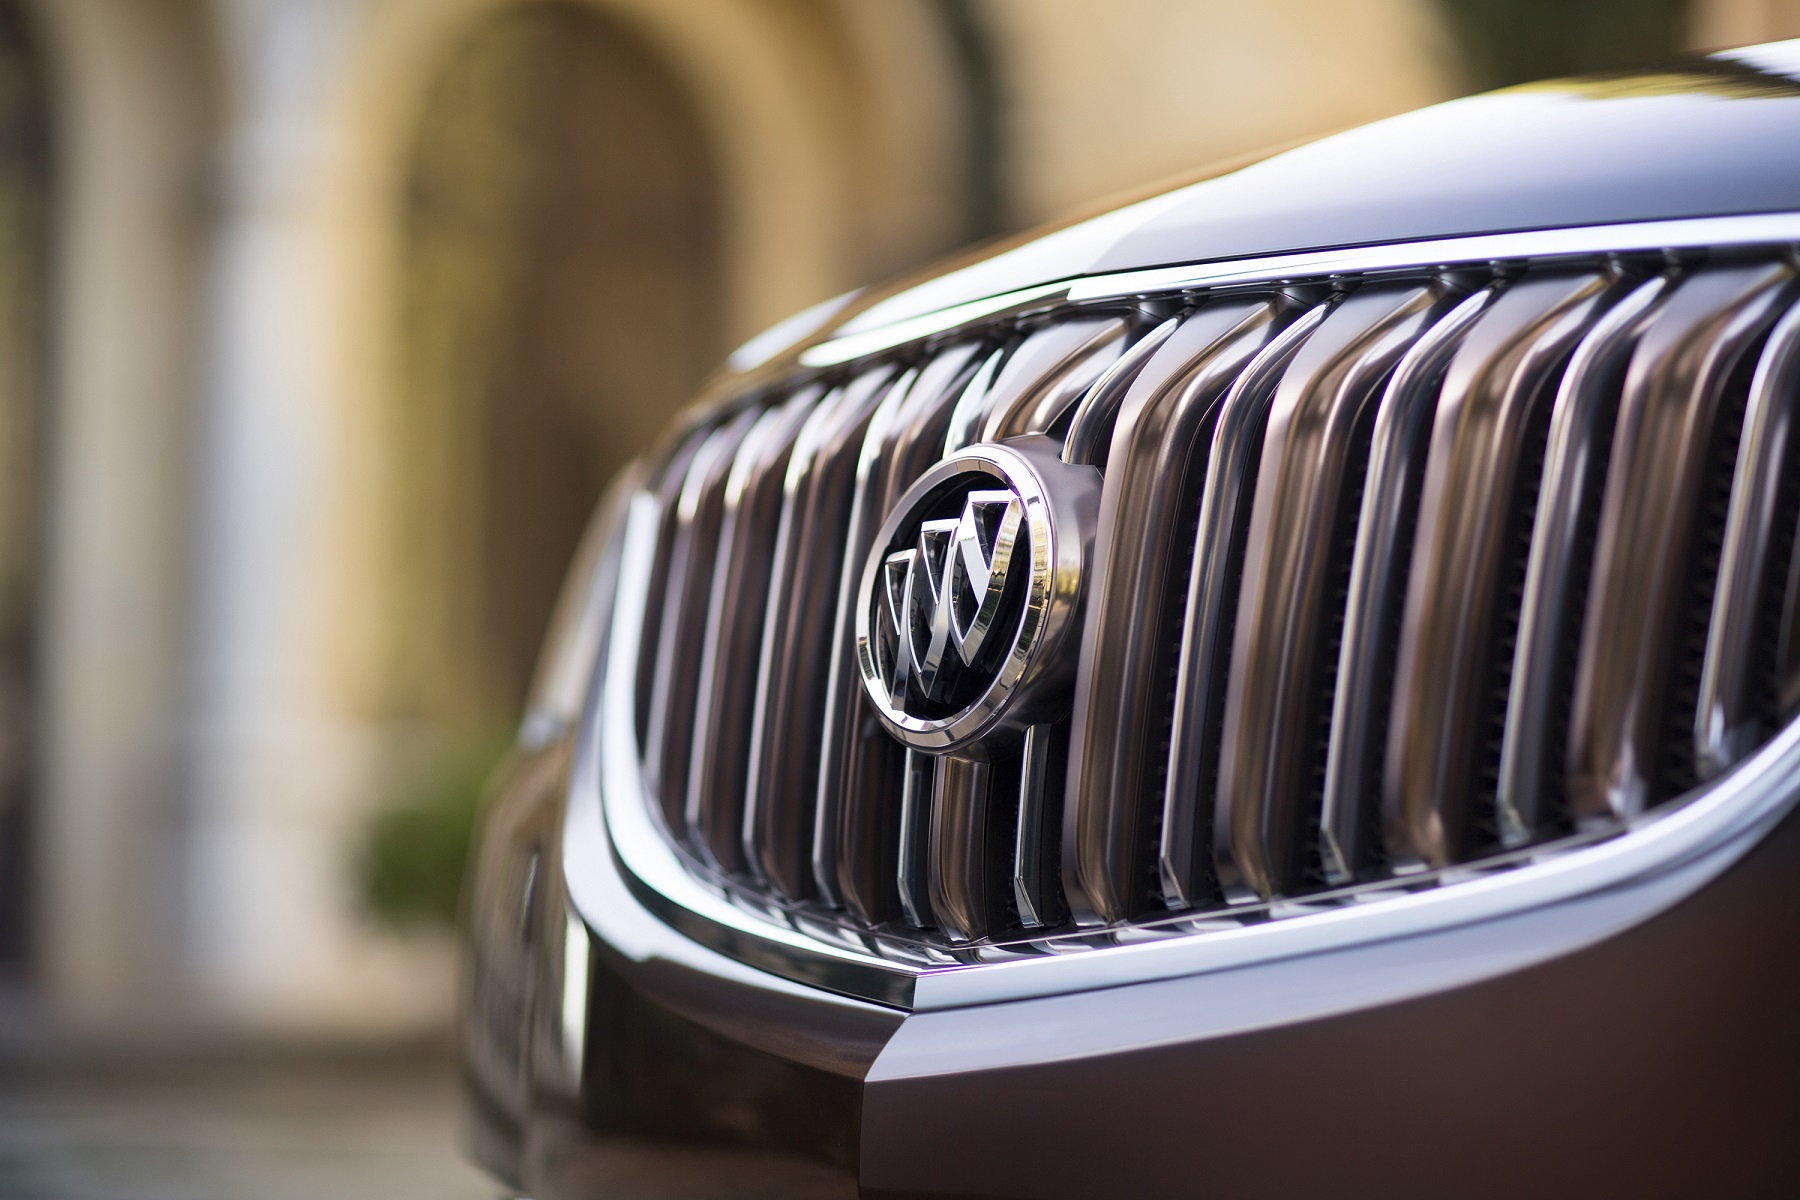 2016 Buick Enclave: Luxury crossover with a legacy